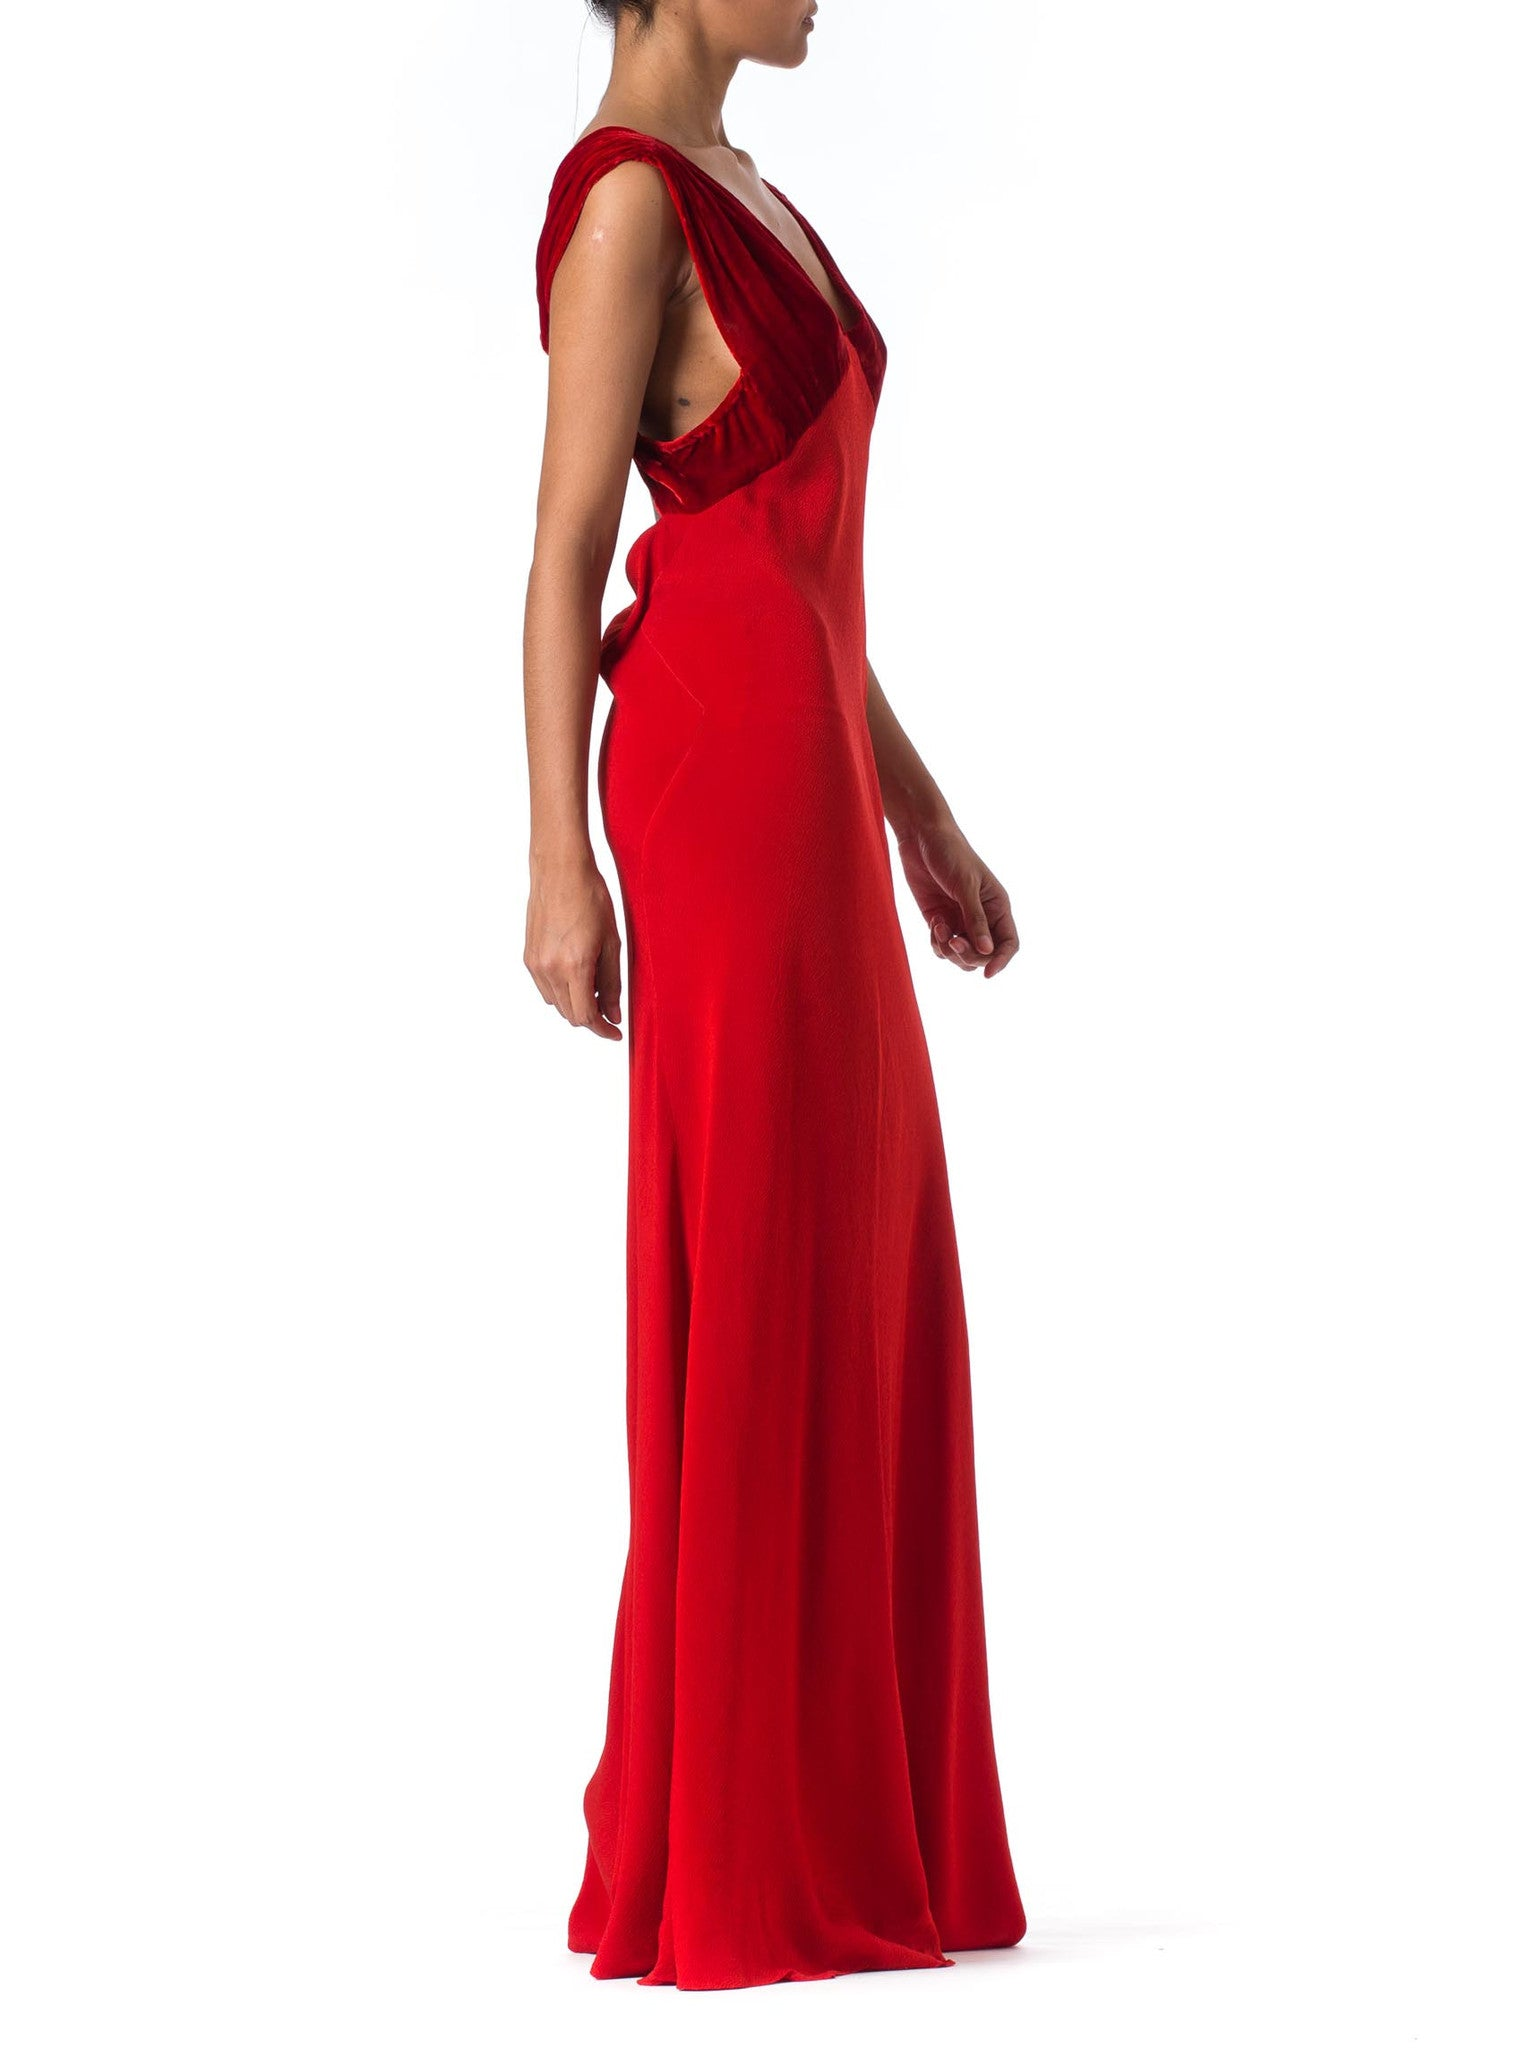 1930s Red Bias Cut Gown – MORPHEW